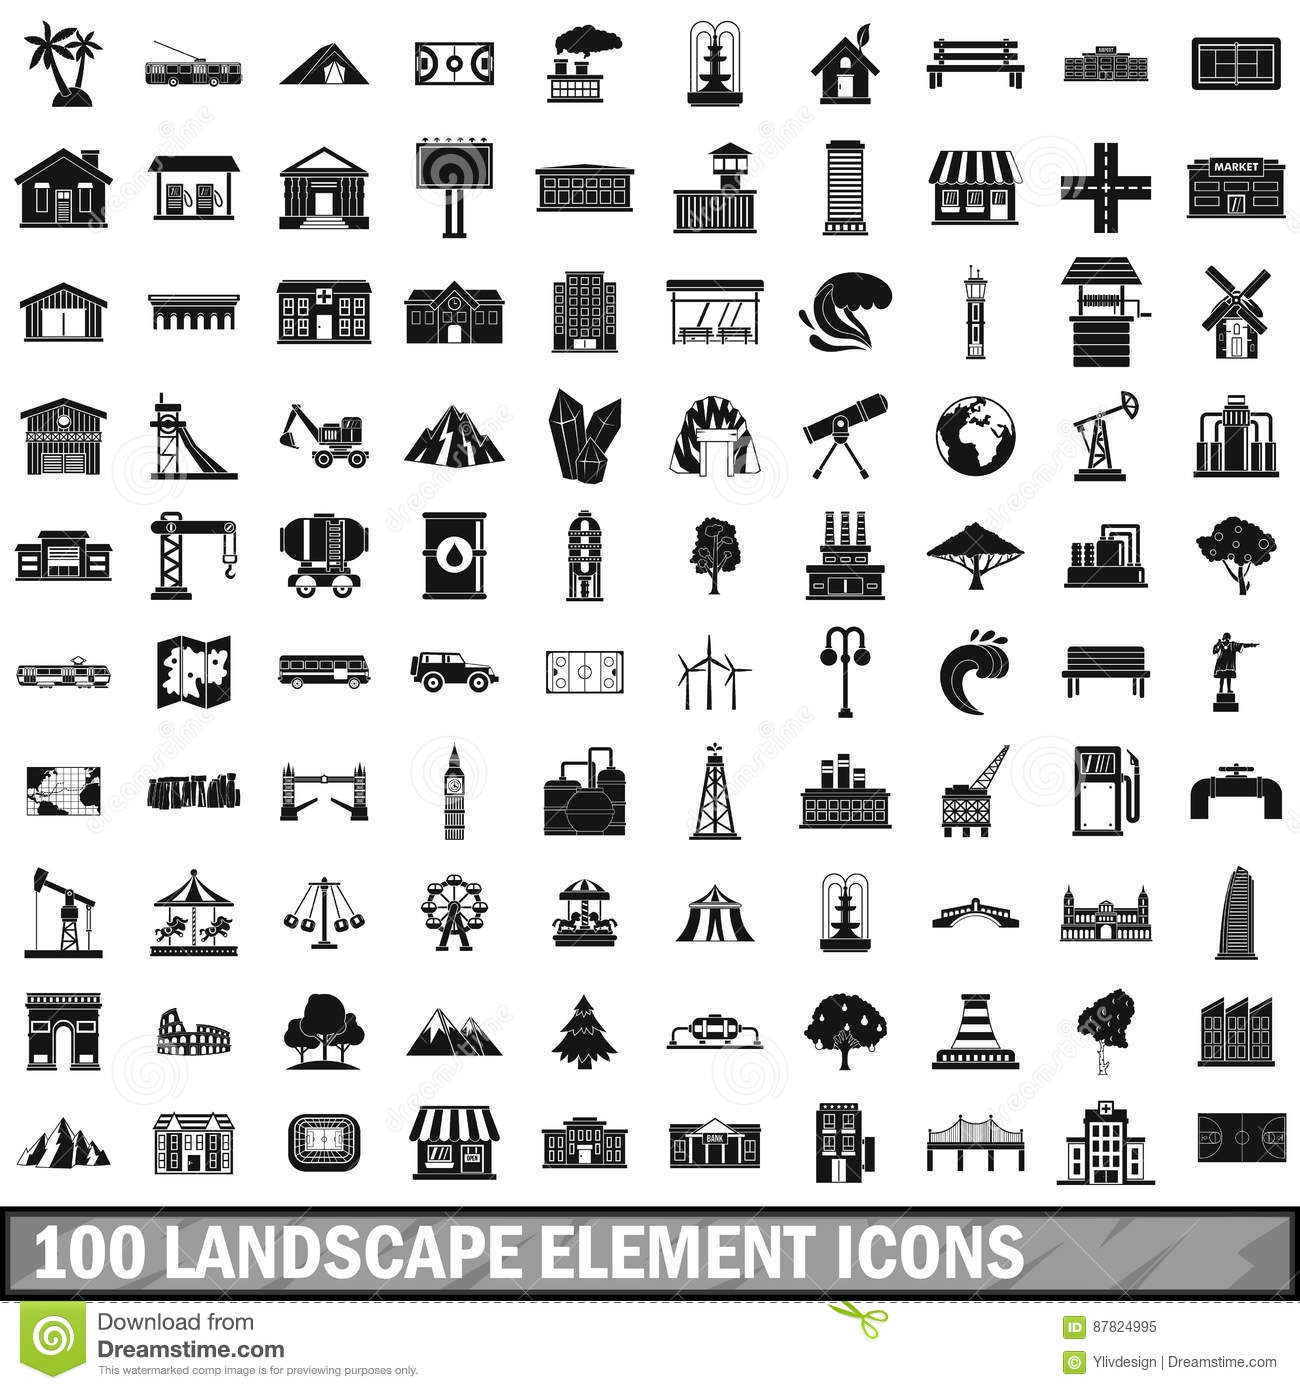 Watermill cartoons illustrations vector stock images for Landscape design icons